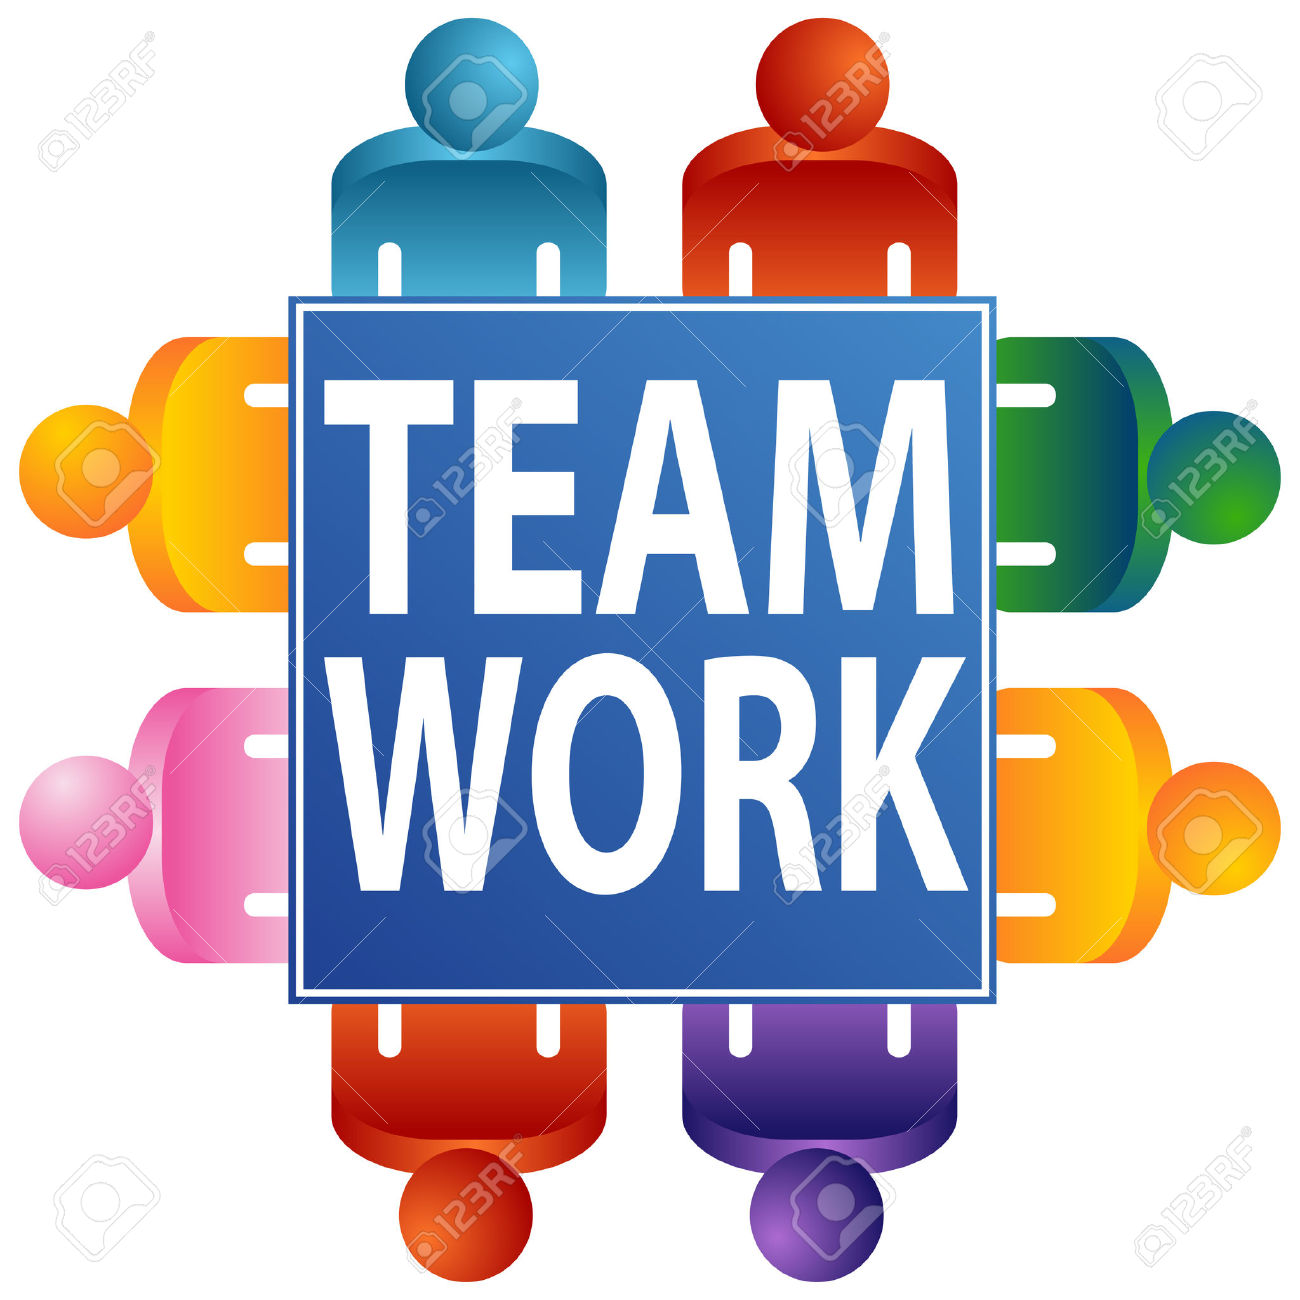 Great teamwork clipart clipart royalty free library Best Teamwork Clipart #13482 - Clipartion.com clipart royalty free library